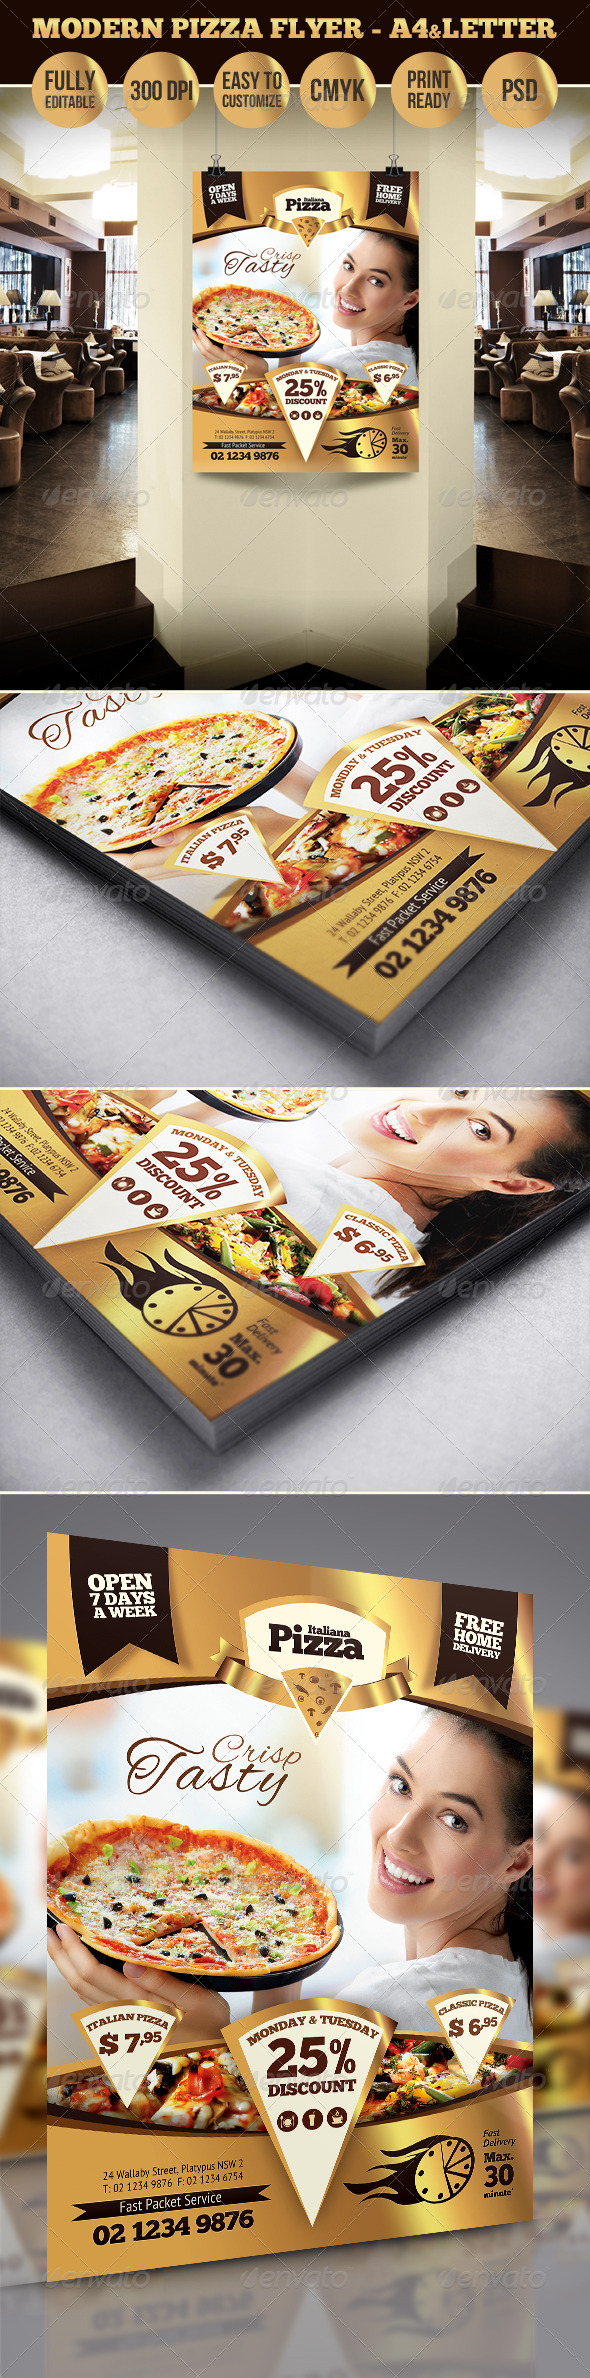 Modern Pizza Flyer - A4 & Letter Sizes - Restaurant Flyers